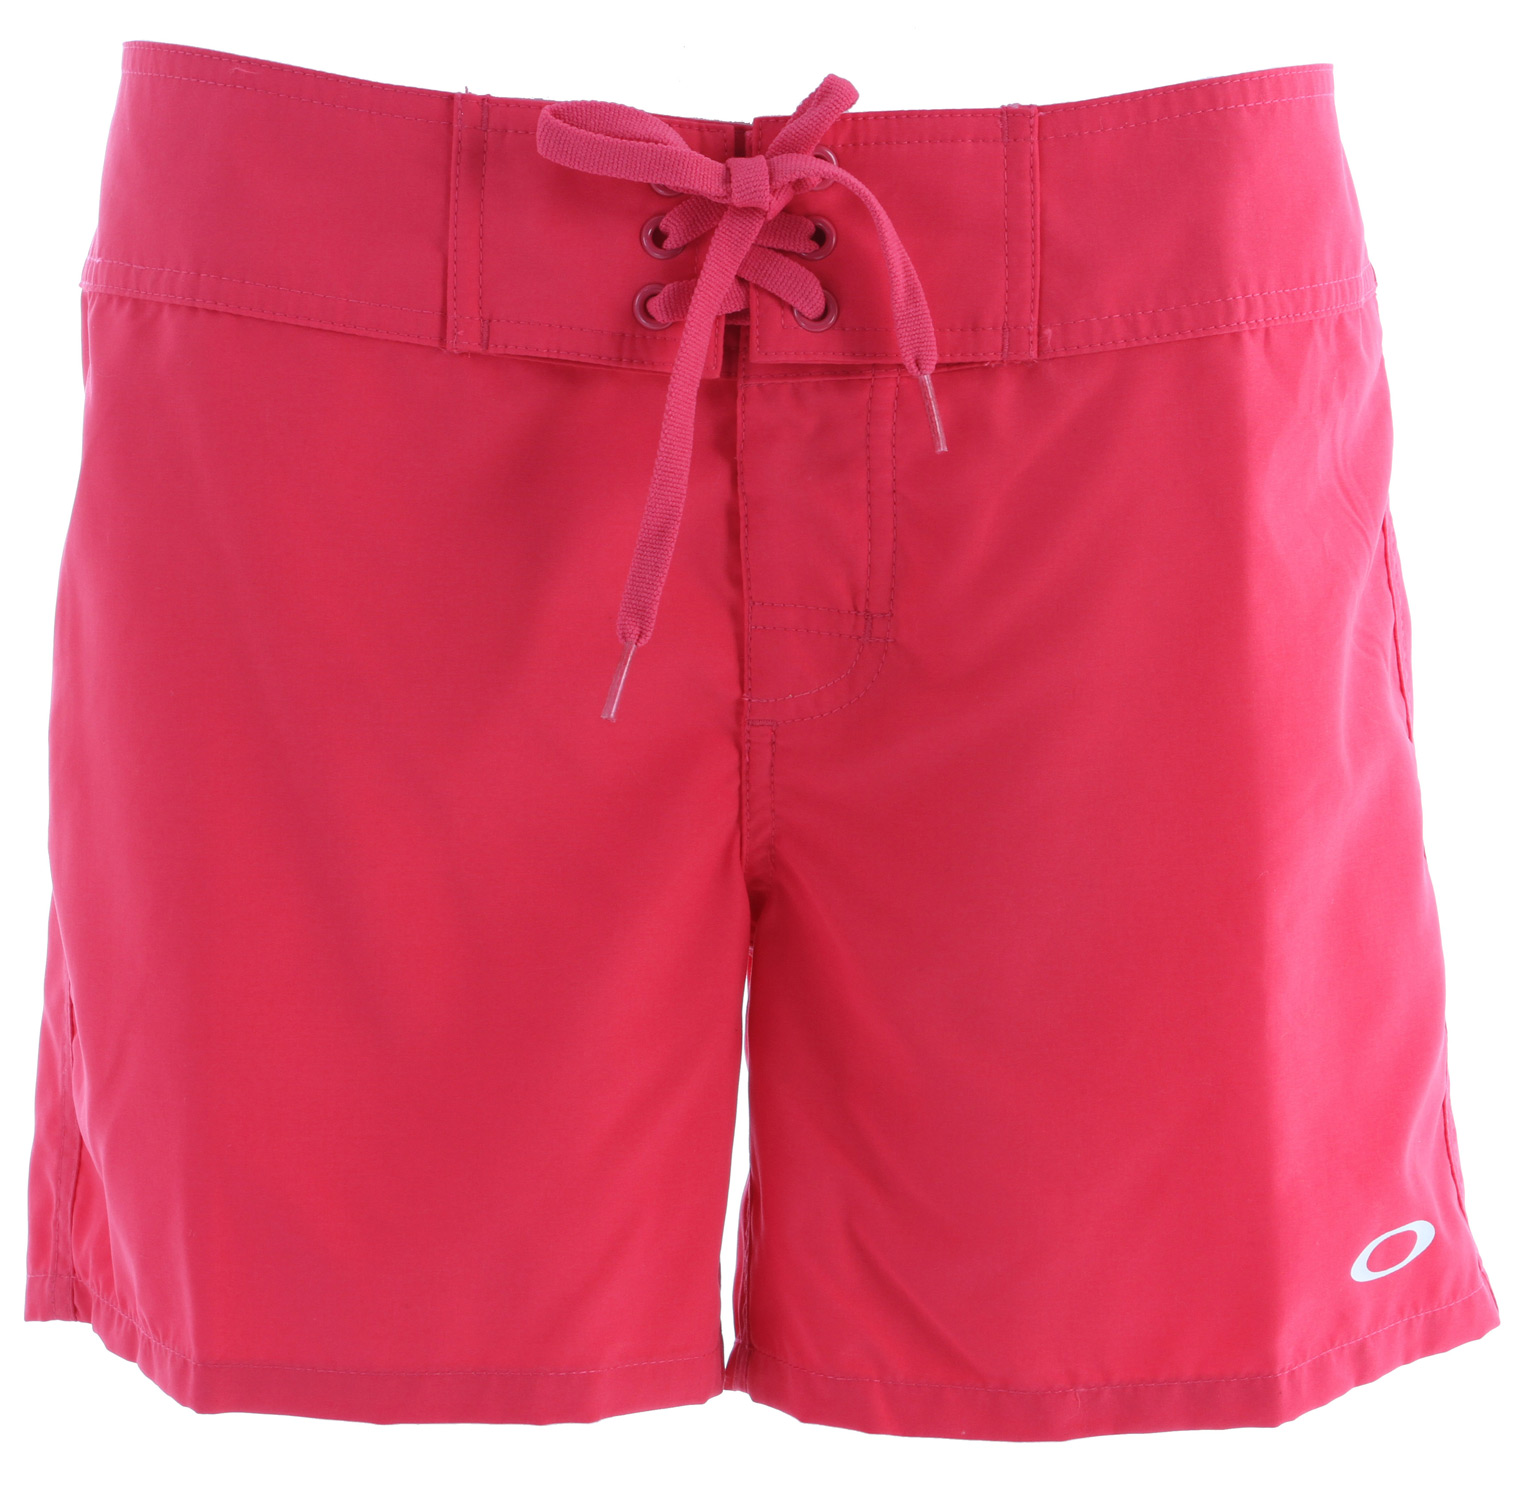 "Surf 5"" solid microsuede boardshort with stretch fly, front draw cord tie, heat transfer logo at bottom front leg hem and water repellent propertiesKey Features of the Oakley Rowdy Boardshorts: 100% polyester Free fit - $24.95"